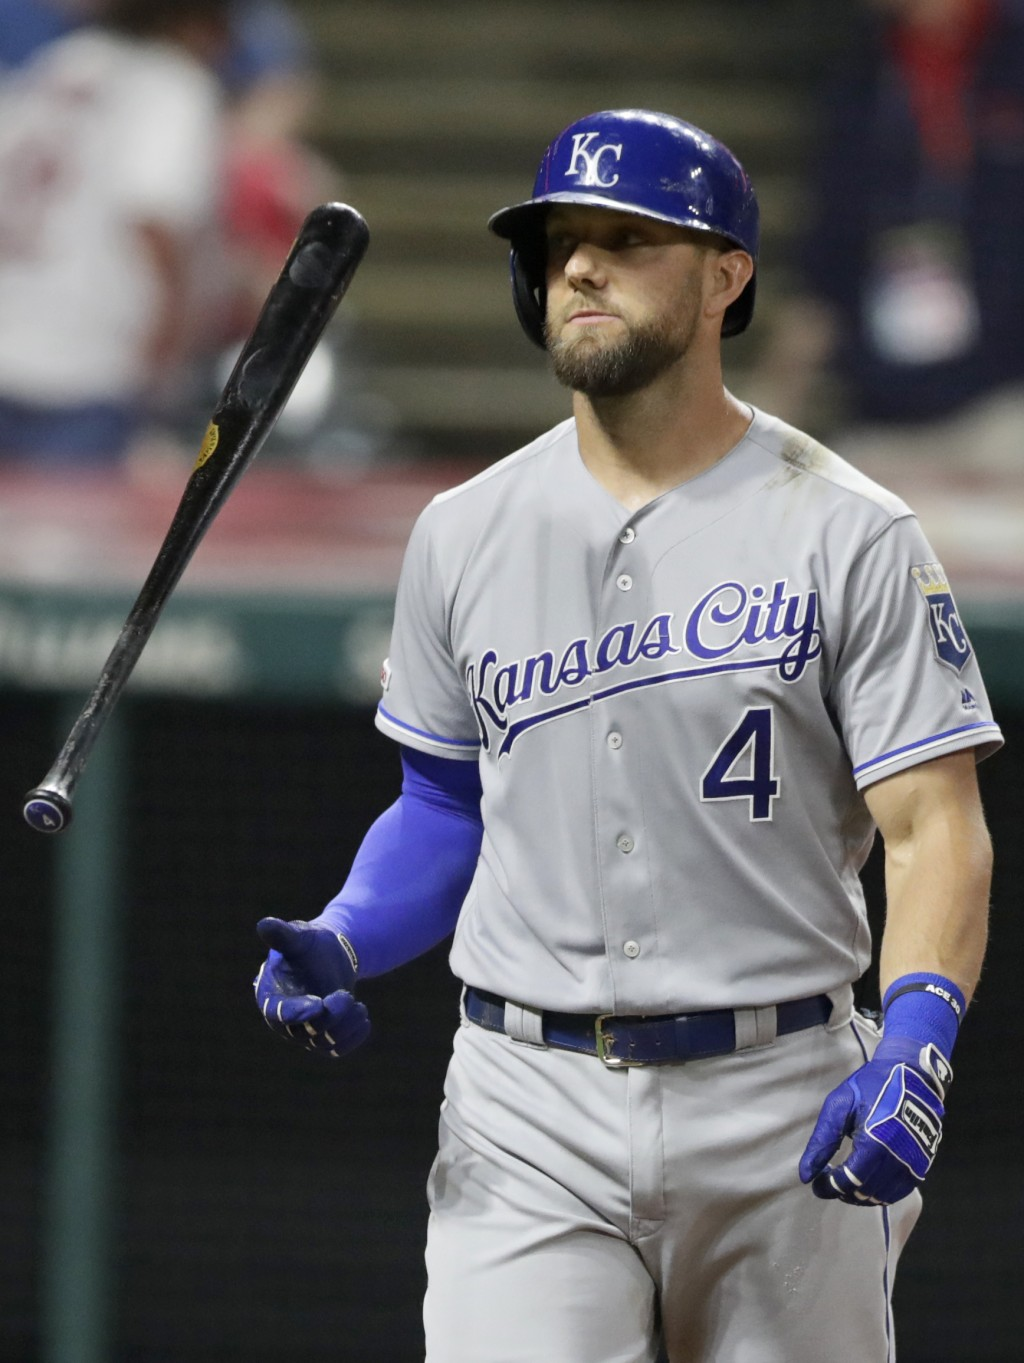 Kansas City Royals' Alex Gordon flips his bat after striking out in the sixth inning of a baseball game against the Cleveland Indians, Monday, June 24...